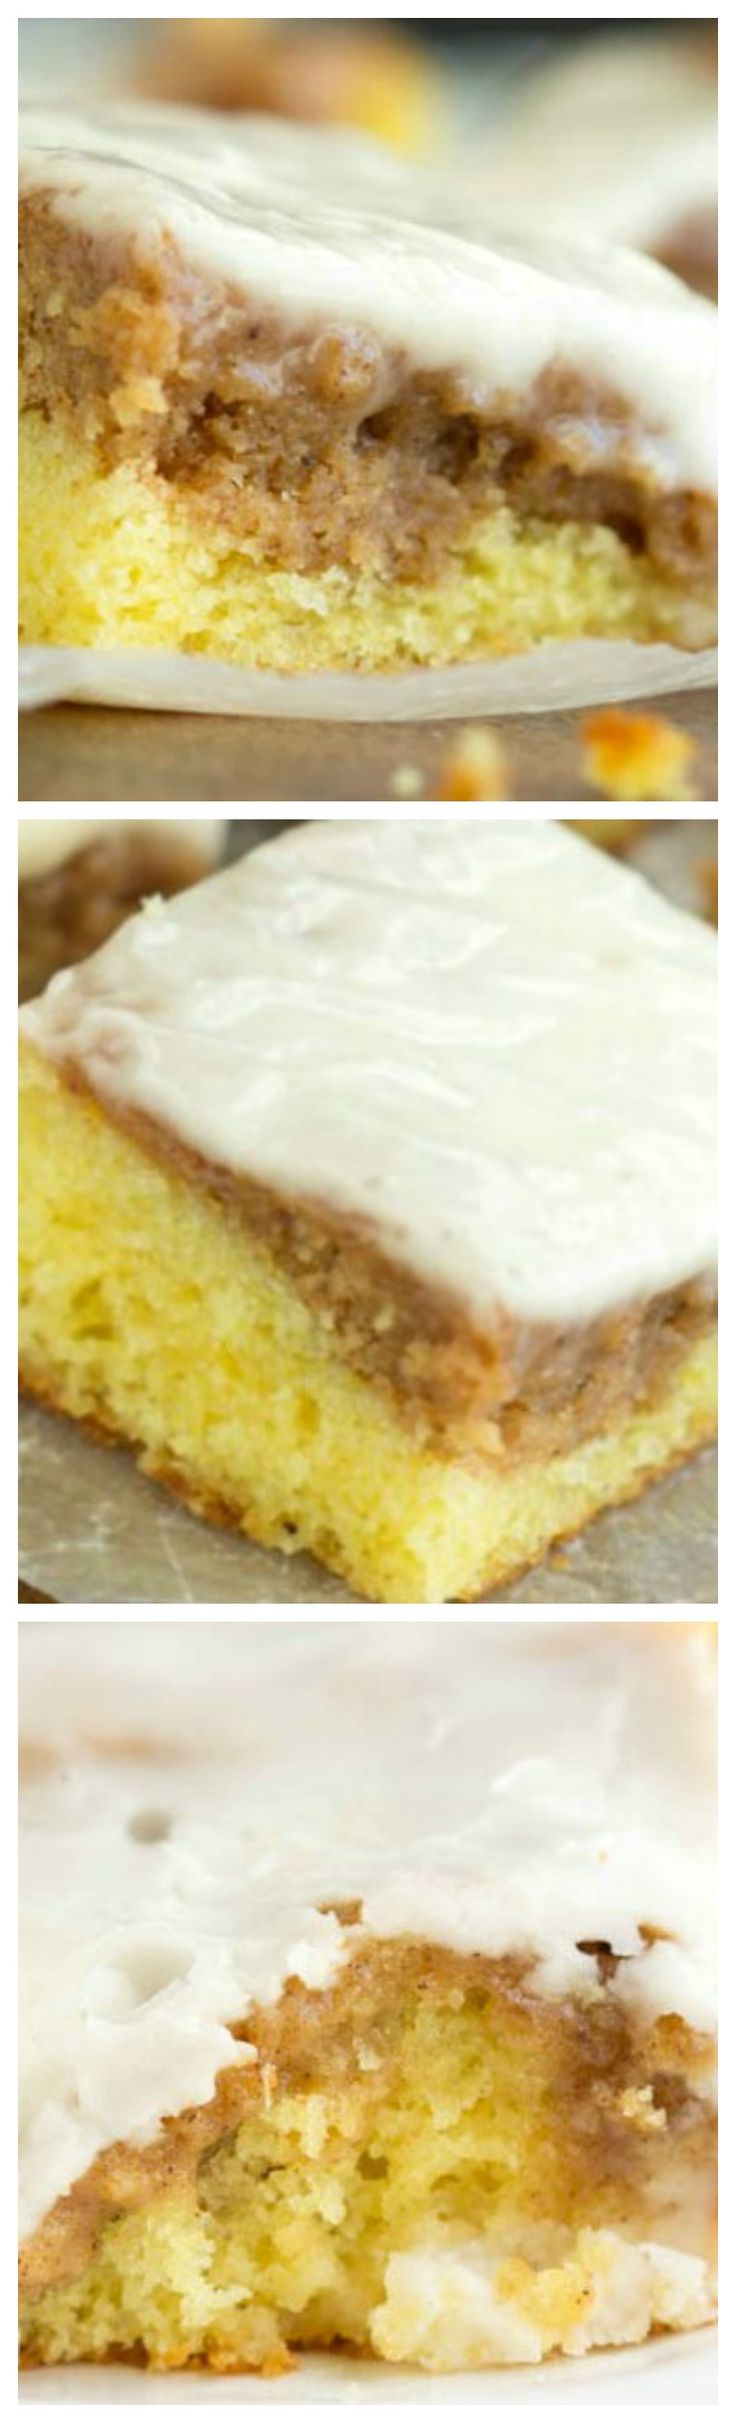 Easy Honey Bun Cake ~ A buttery yellow cake layer, topped with a cinnamon roll filling top layer. A vanilla glaze then smothers the entire cake with sweetness... This is an easy way to enjoy cinnamon rolls without the wait time of yeast rising.